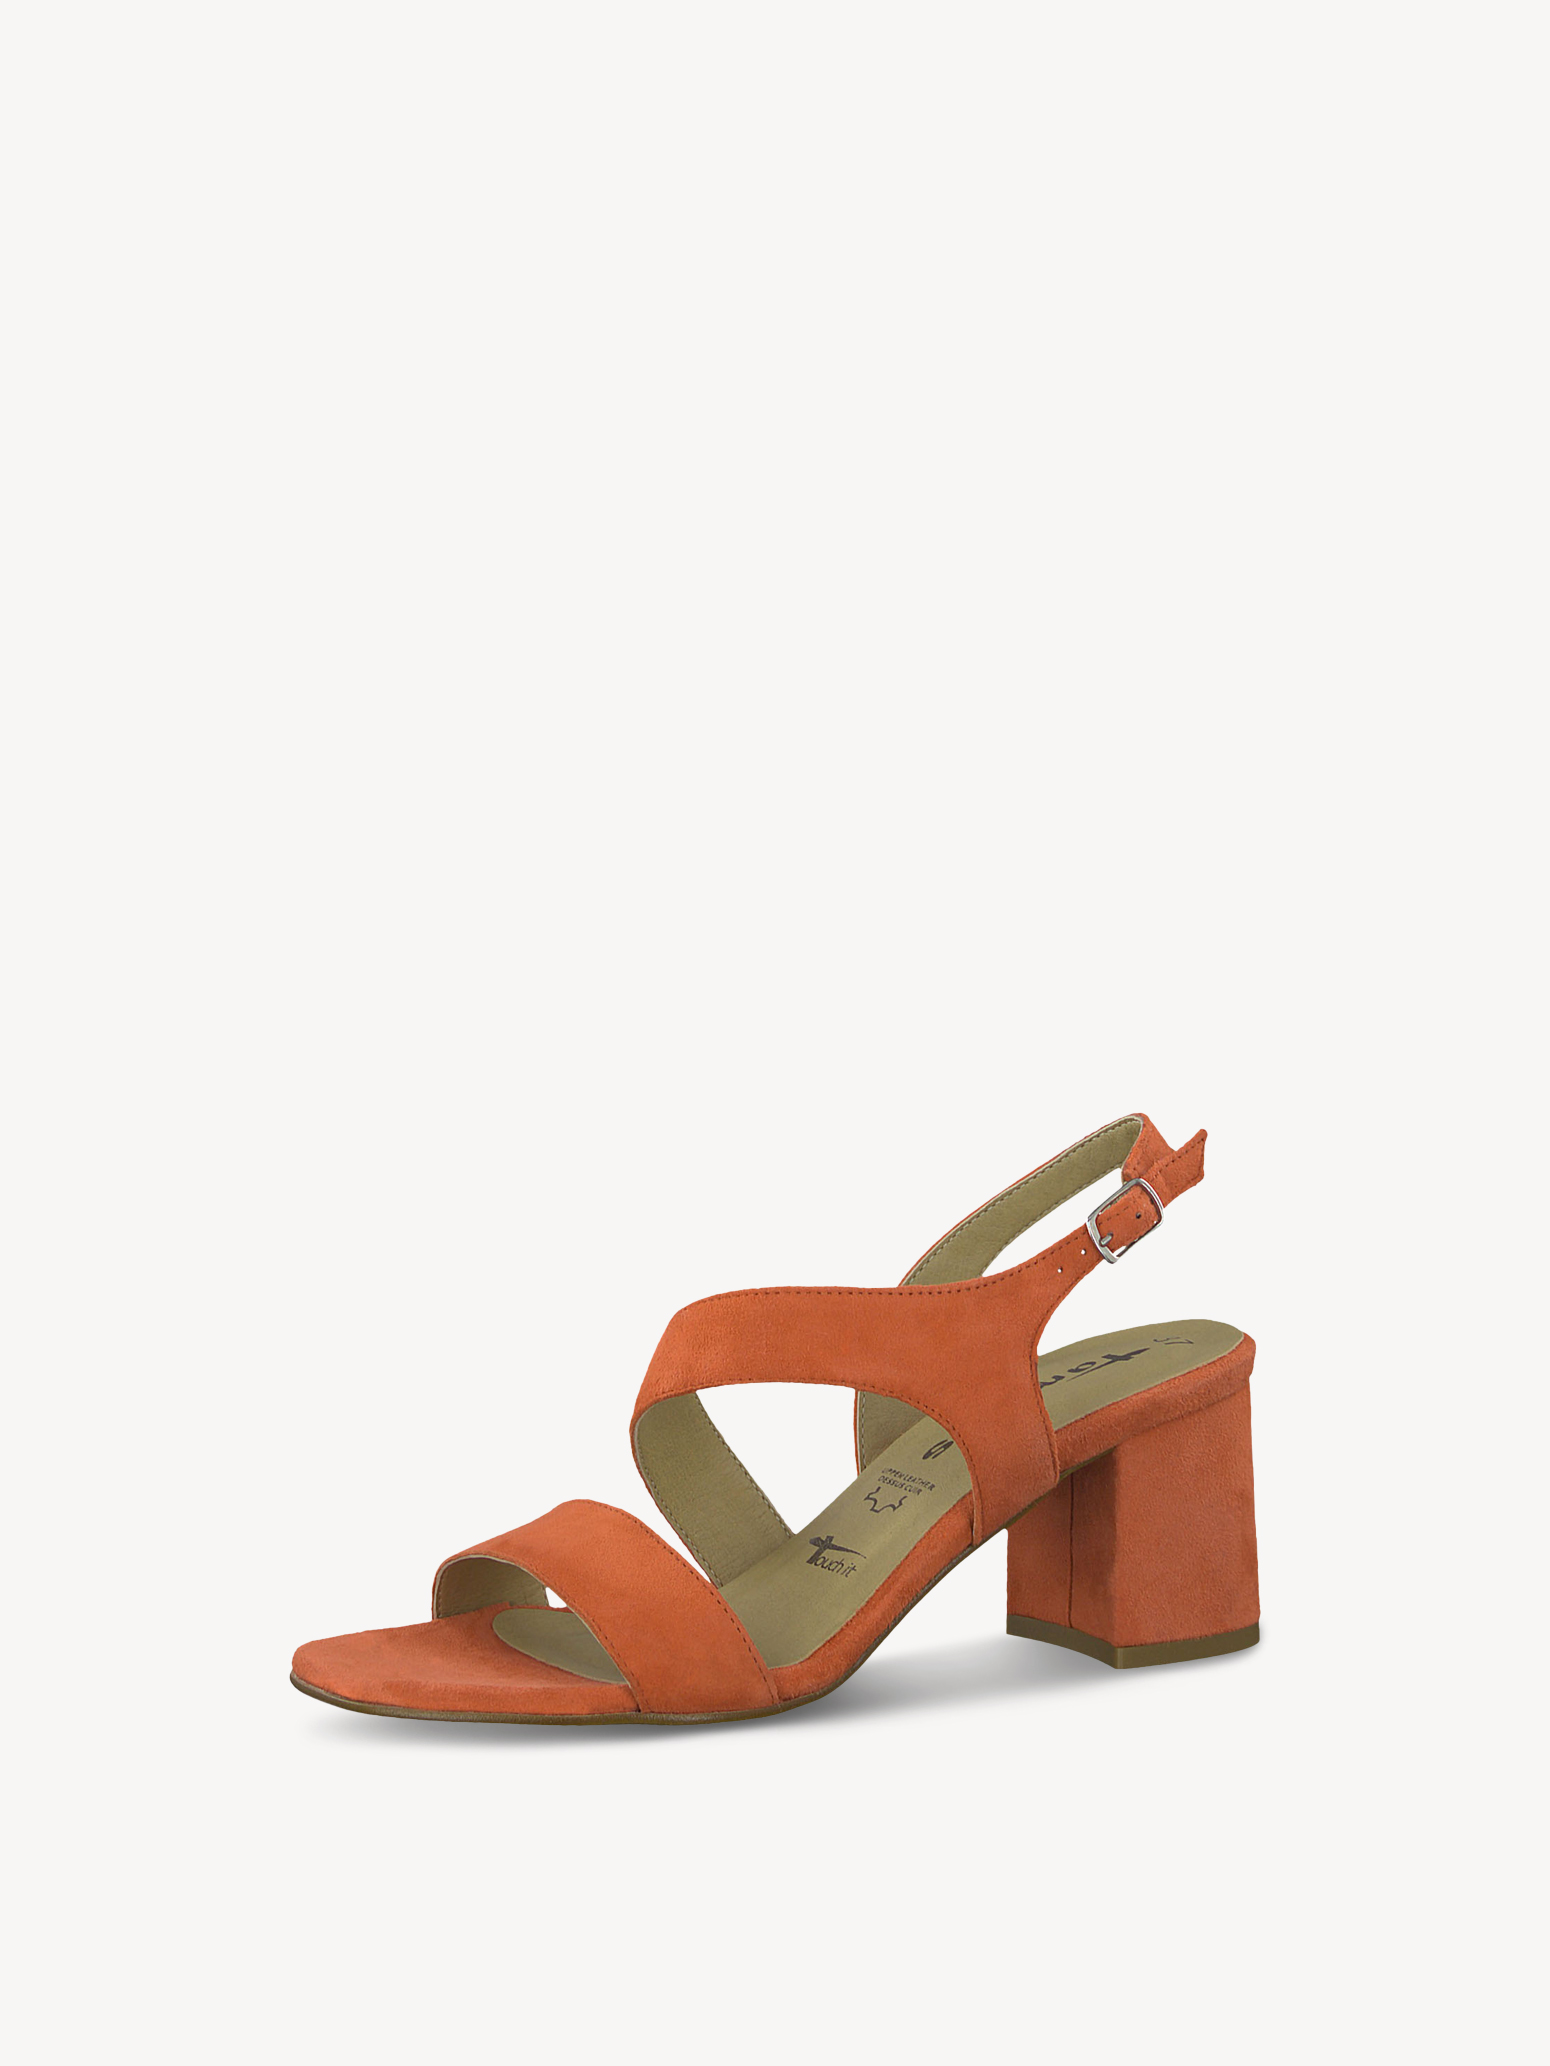 Leather Heeled sandal - red, CORAL, hi-res